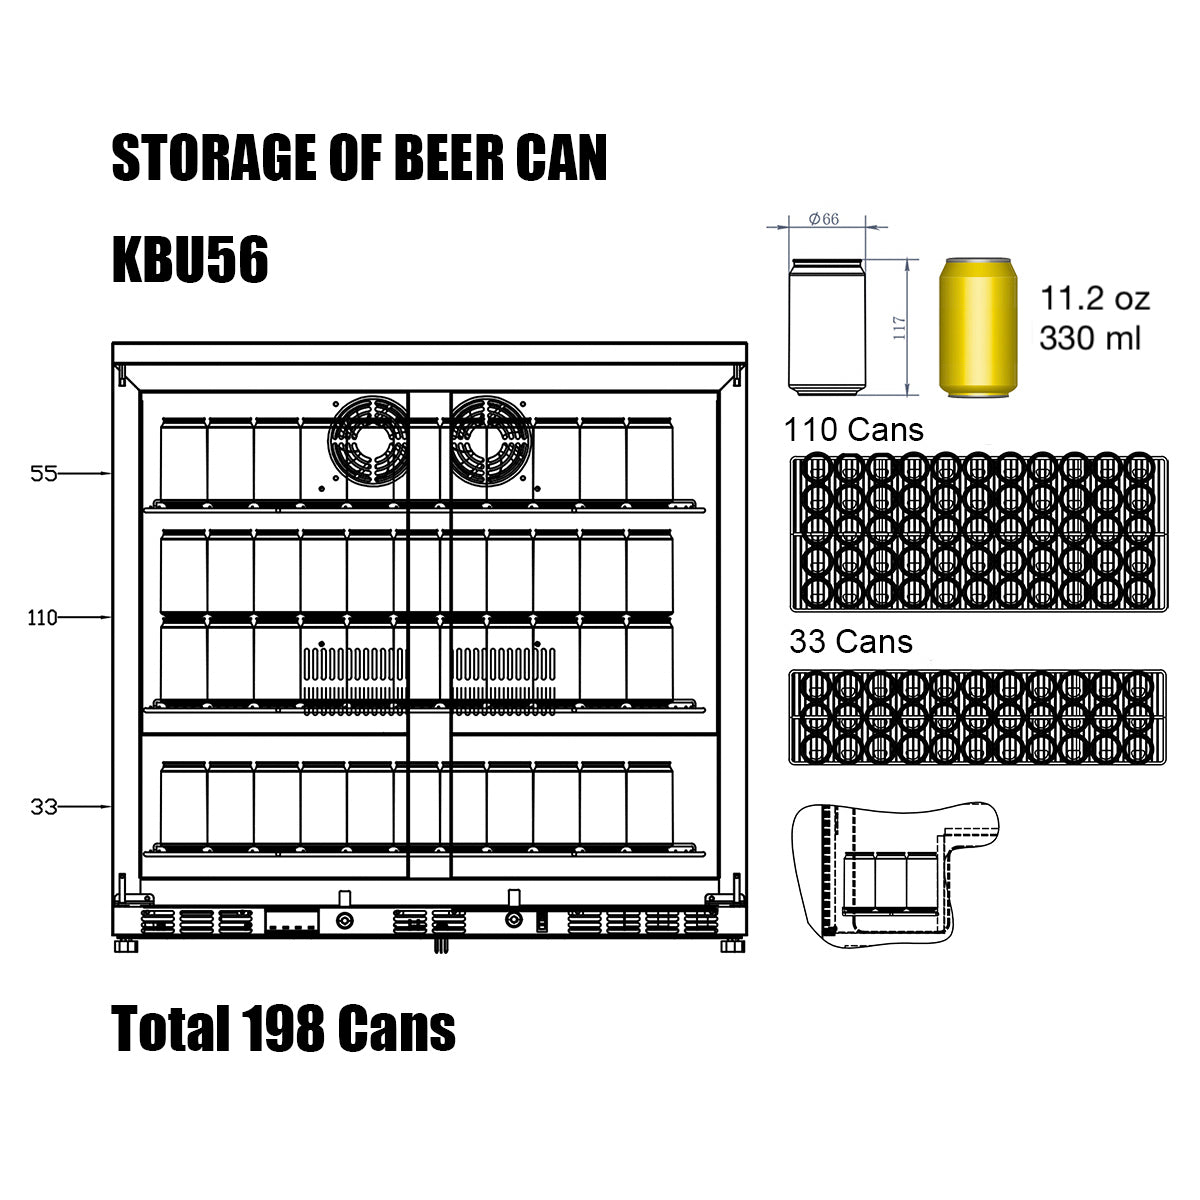 KBU56 Storage of Beer Can